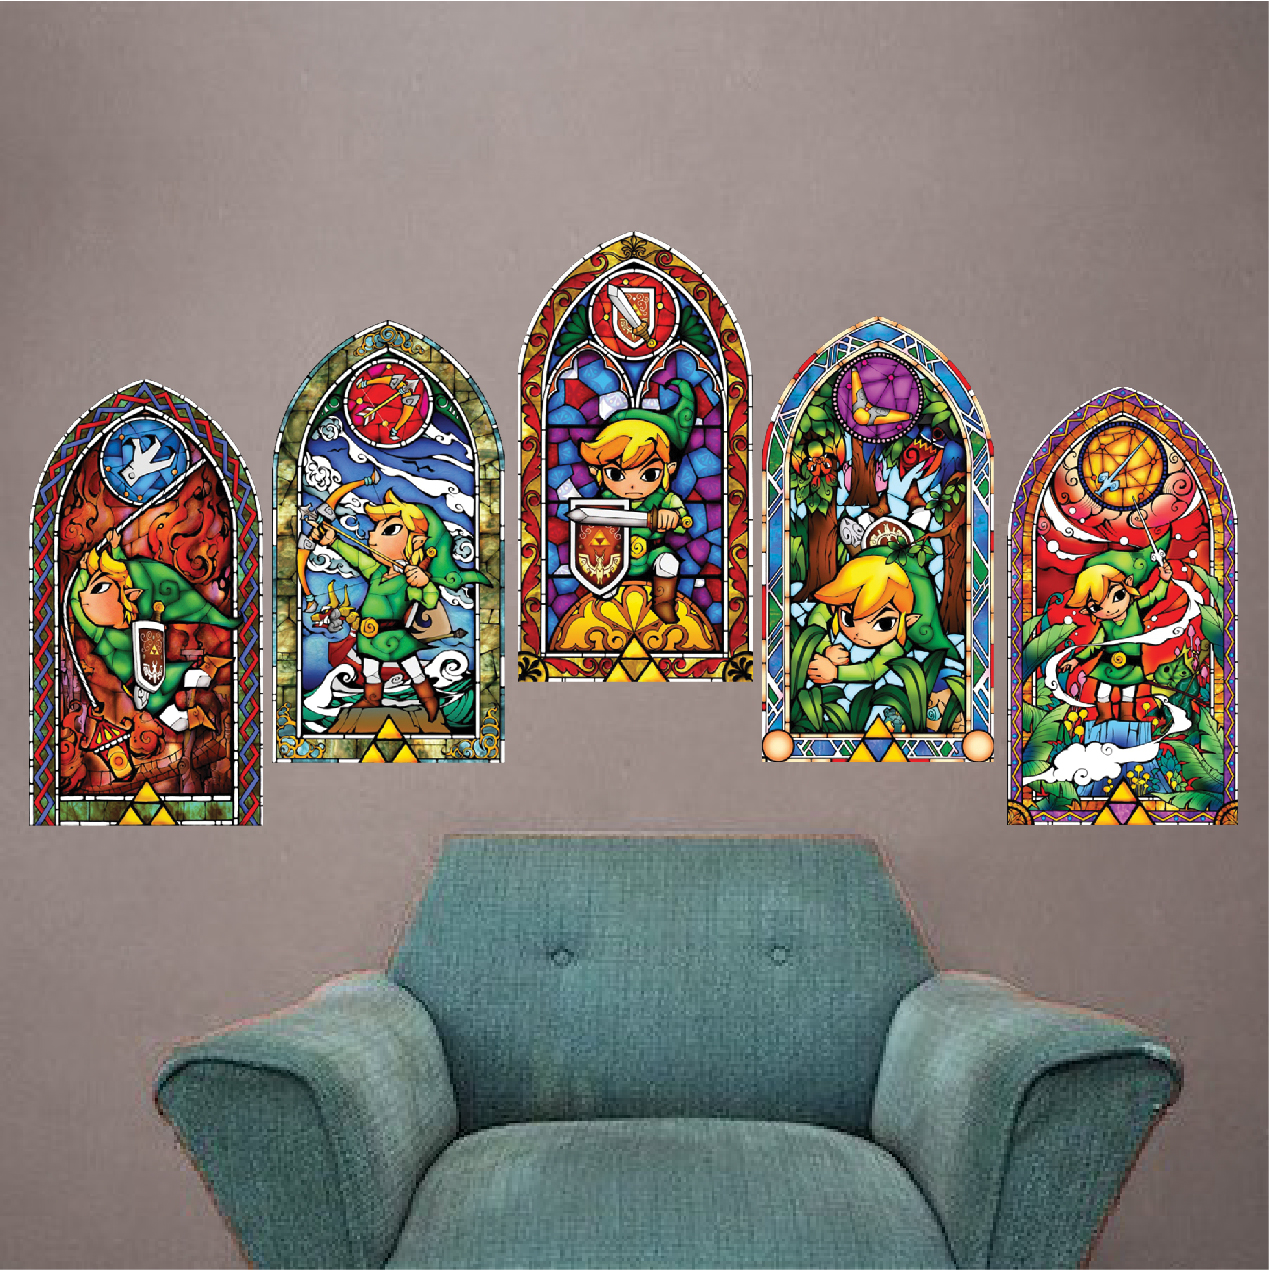 Zelda wind maker stained glass wall mural decals video game addthis sharing sidebar amipublicfo Choice Image